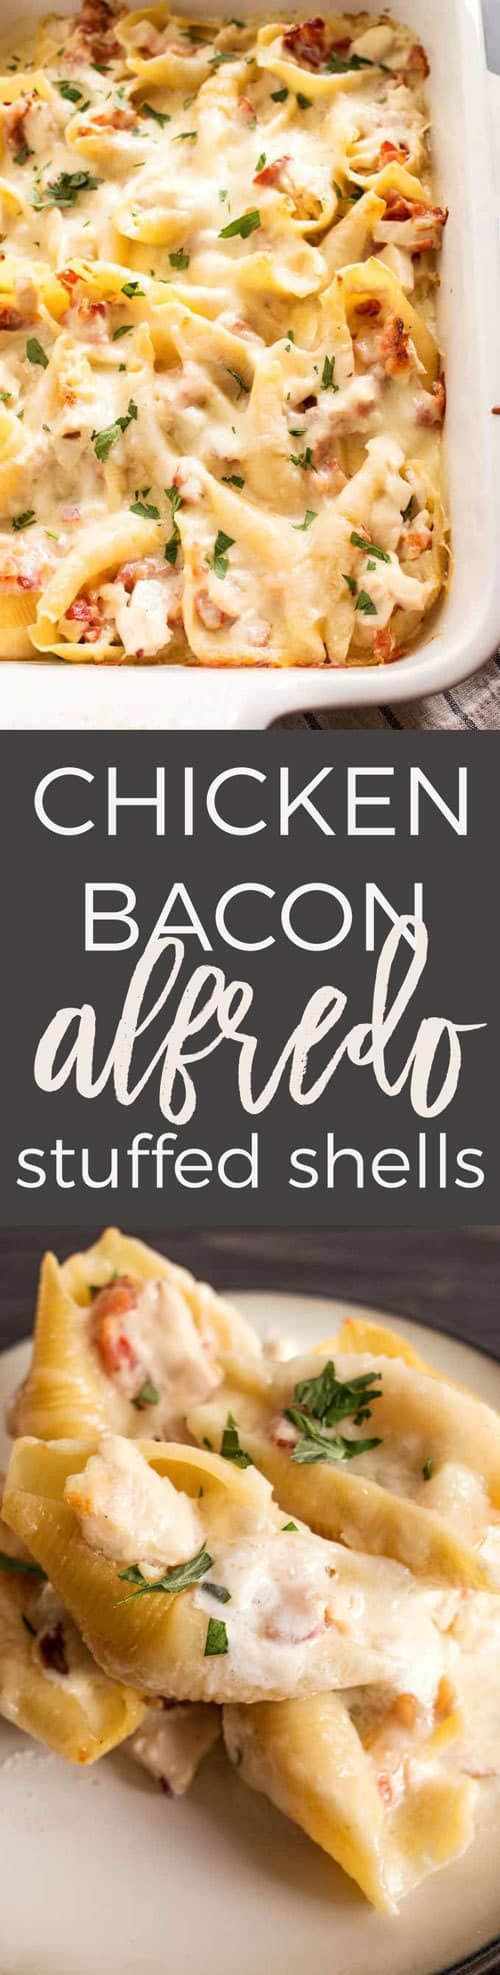 Chicken Bacon Alfredo Stuffed Shells These chicken bacon Alfredo stuffed shells are perfect for Sunday supper Use store bought Alfredo sauce or homemade for an extra spec...